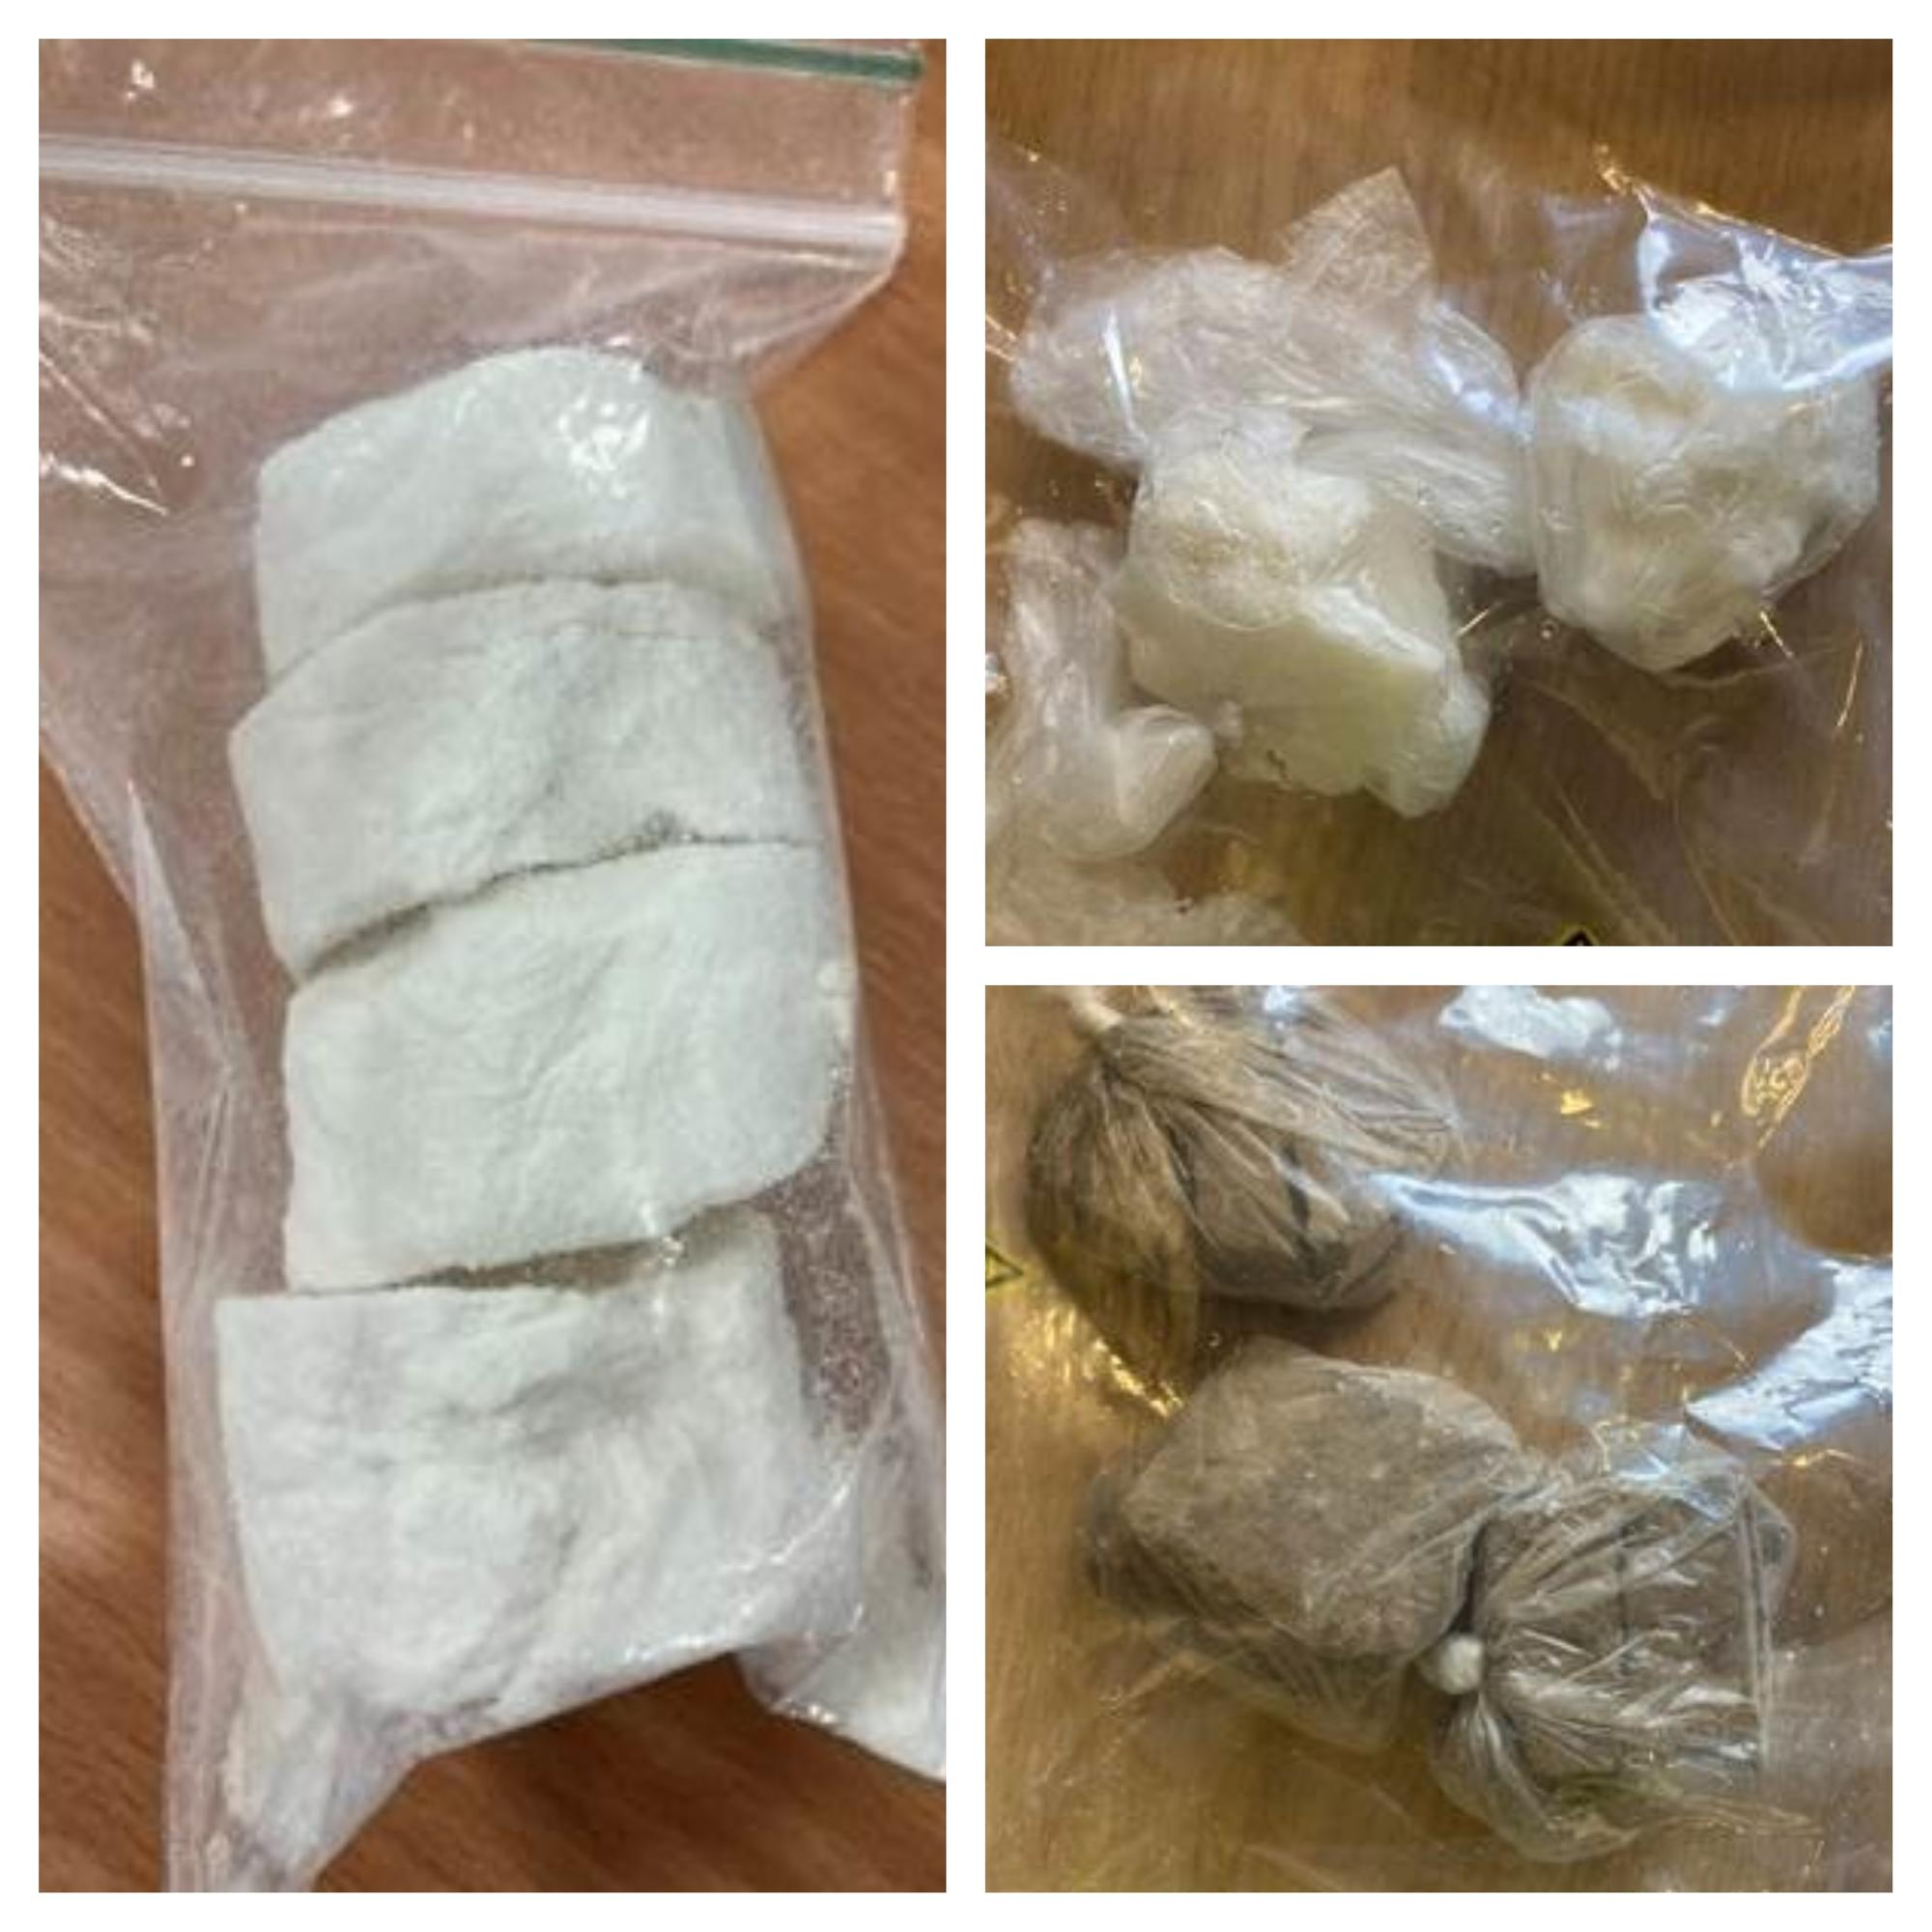 Over £40,000 worth of drugs recovered by police across Sheffield and Rotherham